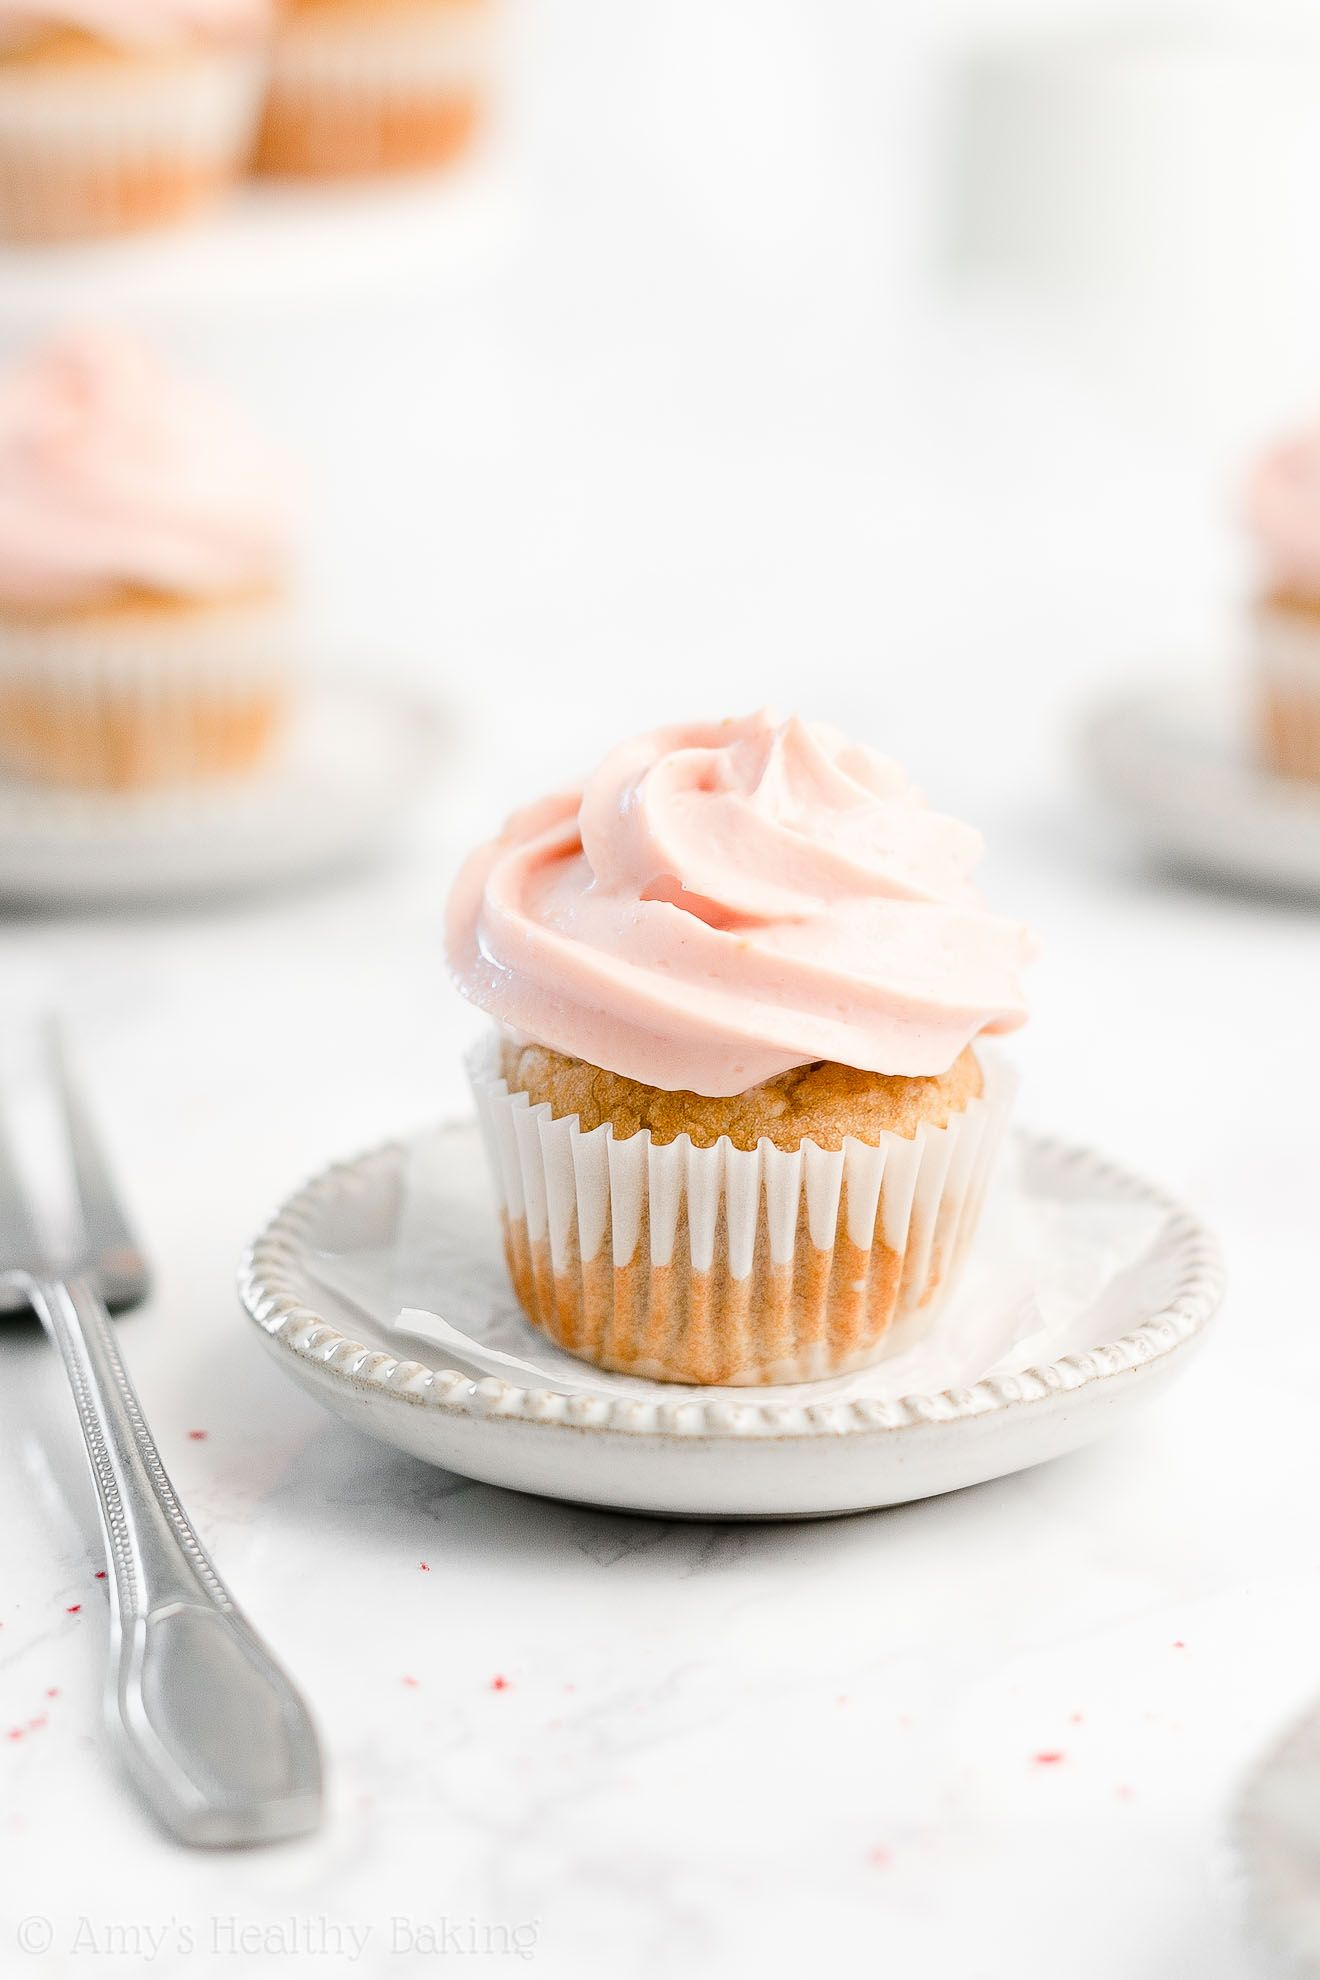 Baking Recipes From Scratch Sweets